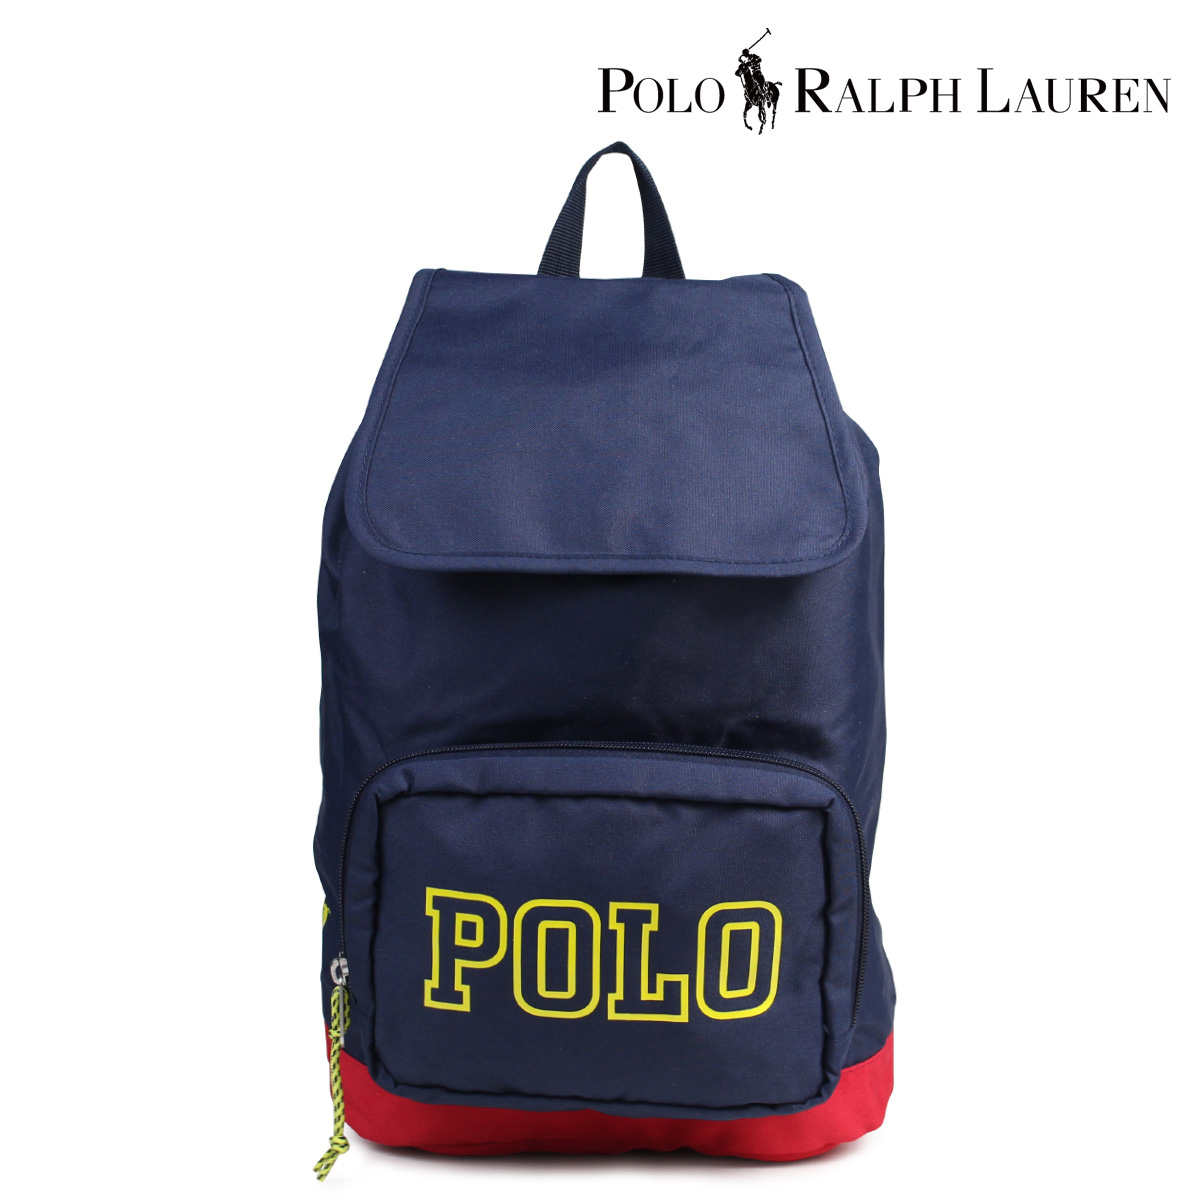 ALLSPORTS  RALPH LAUREN rucksack bag backpack POLO Ralph Lauren polo men  gap Dis navy  7 25 Shinnyu load   177   224e68304dc0d